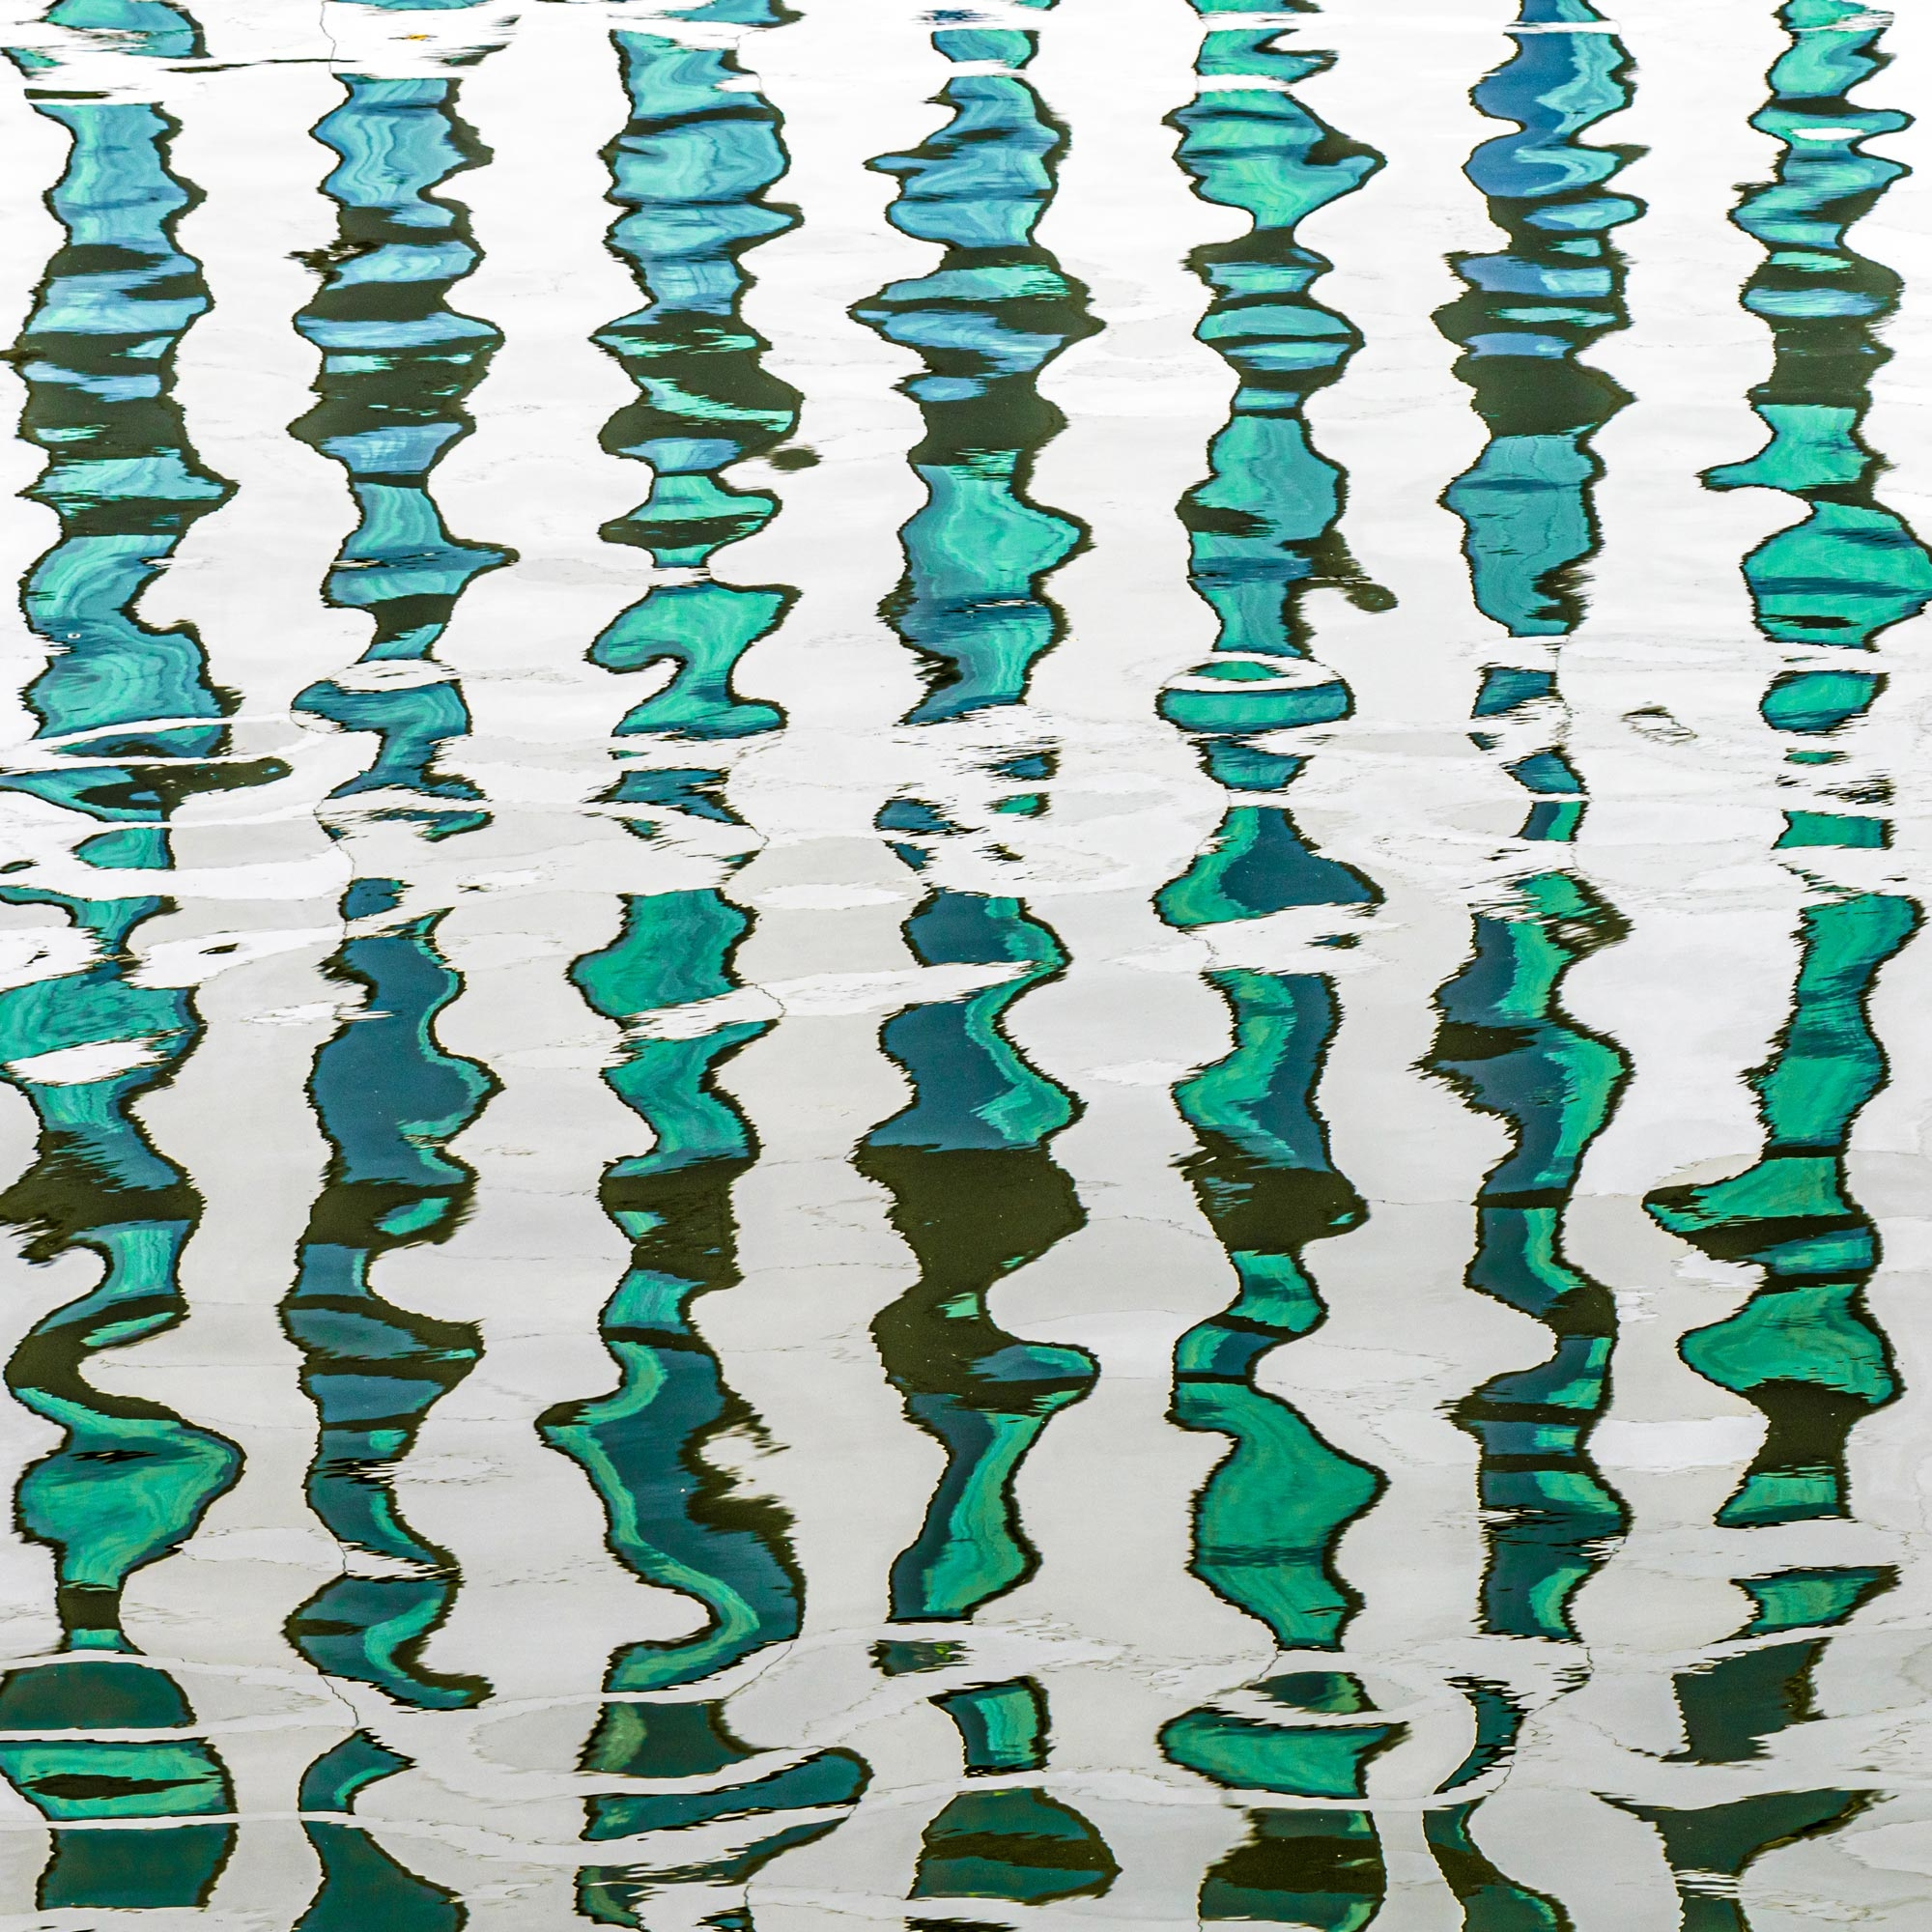 Patterns - Water Reflections